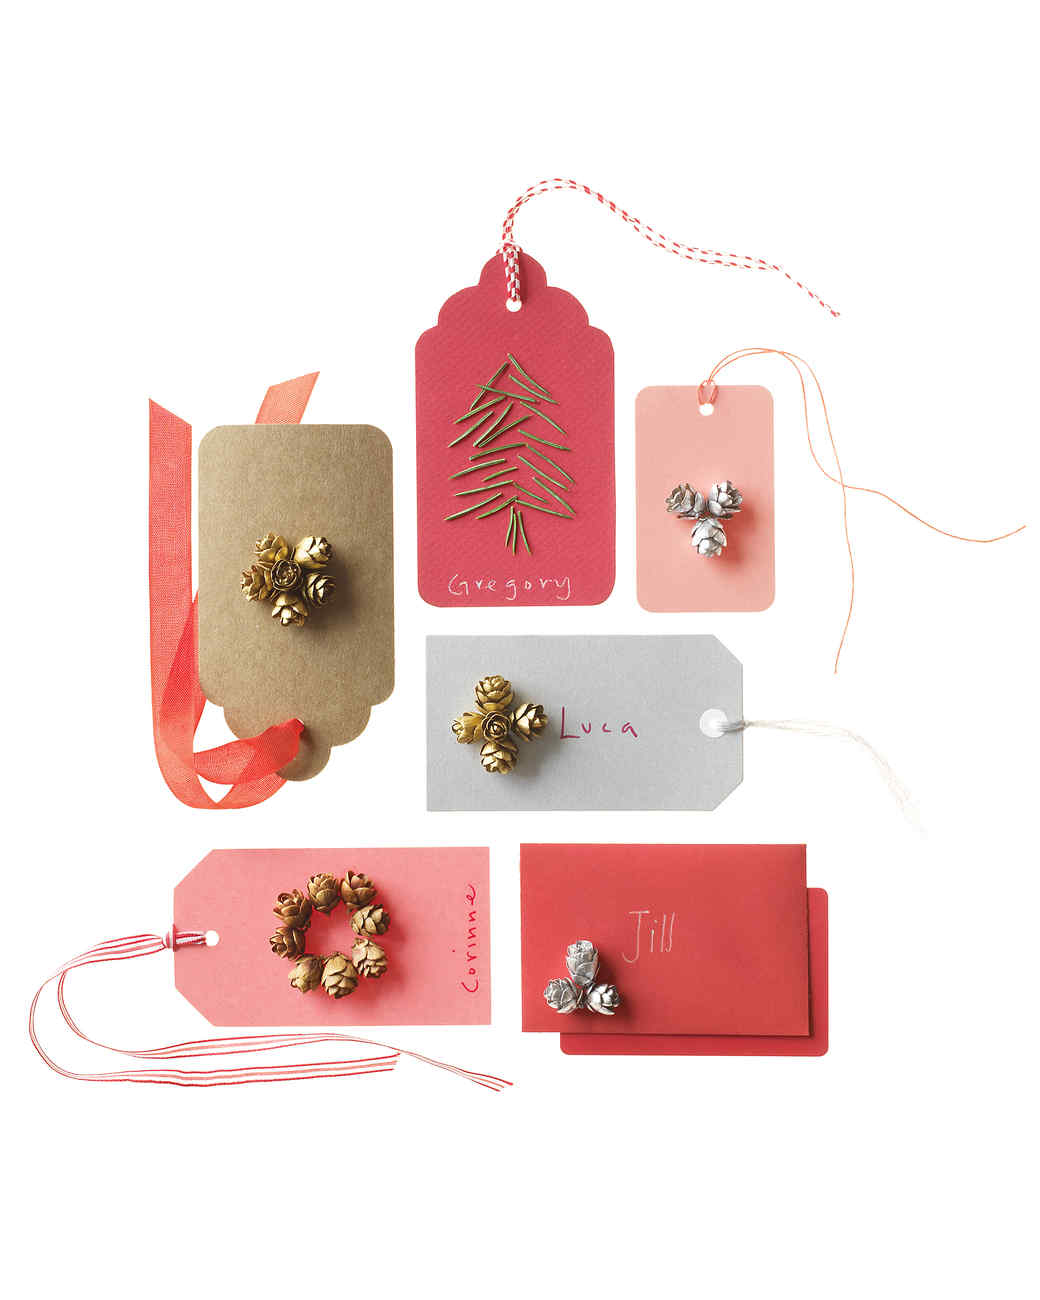 Pinecone-Embellished Gift Tags